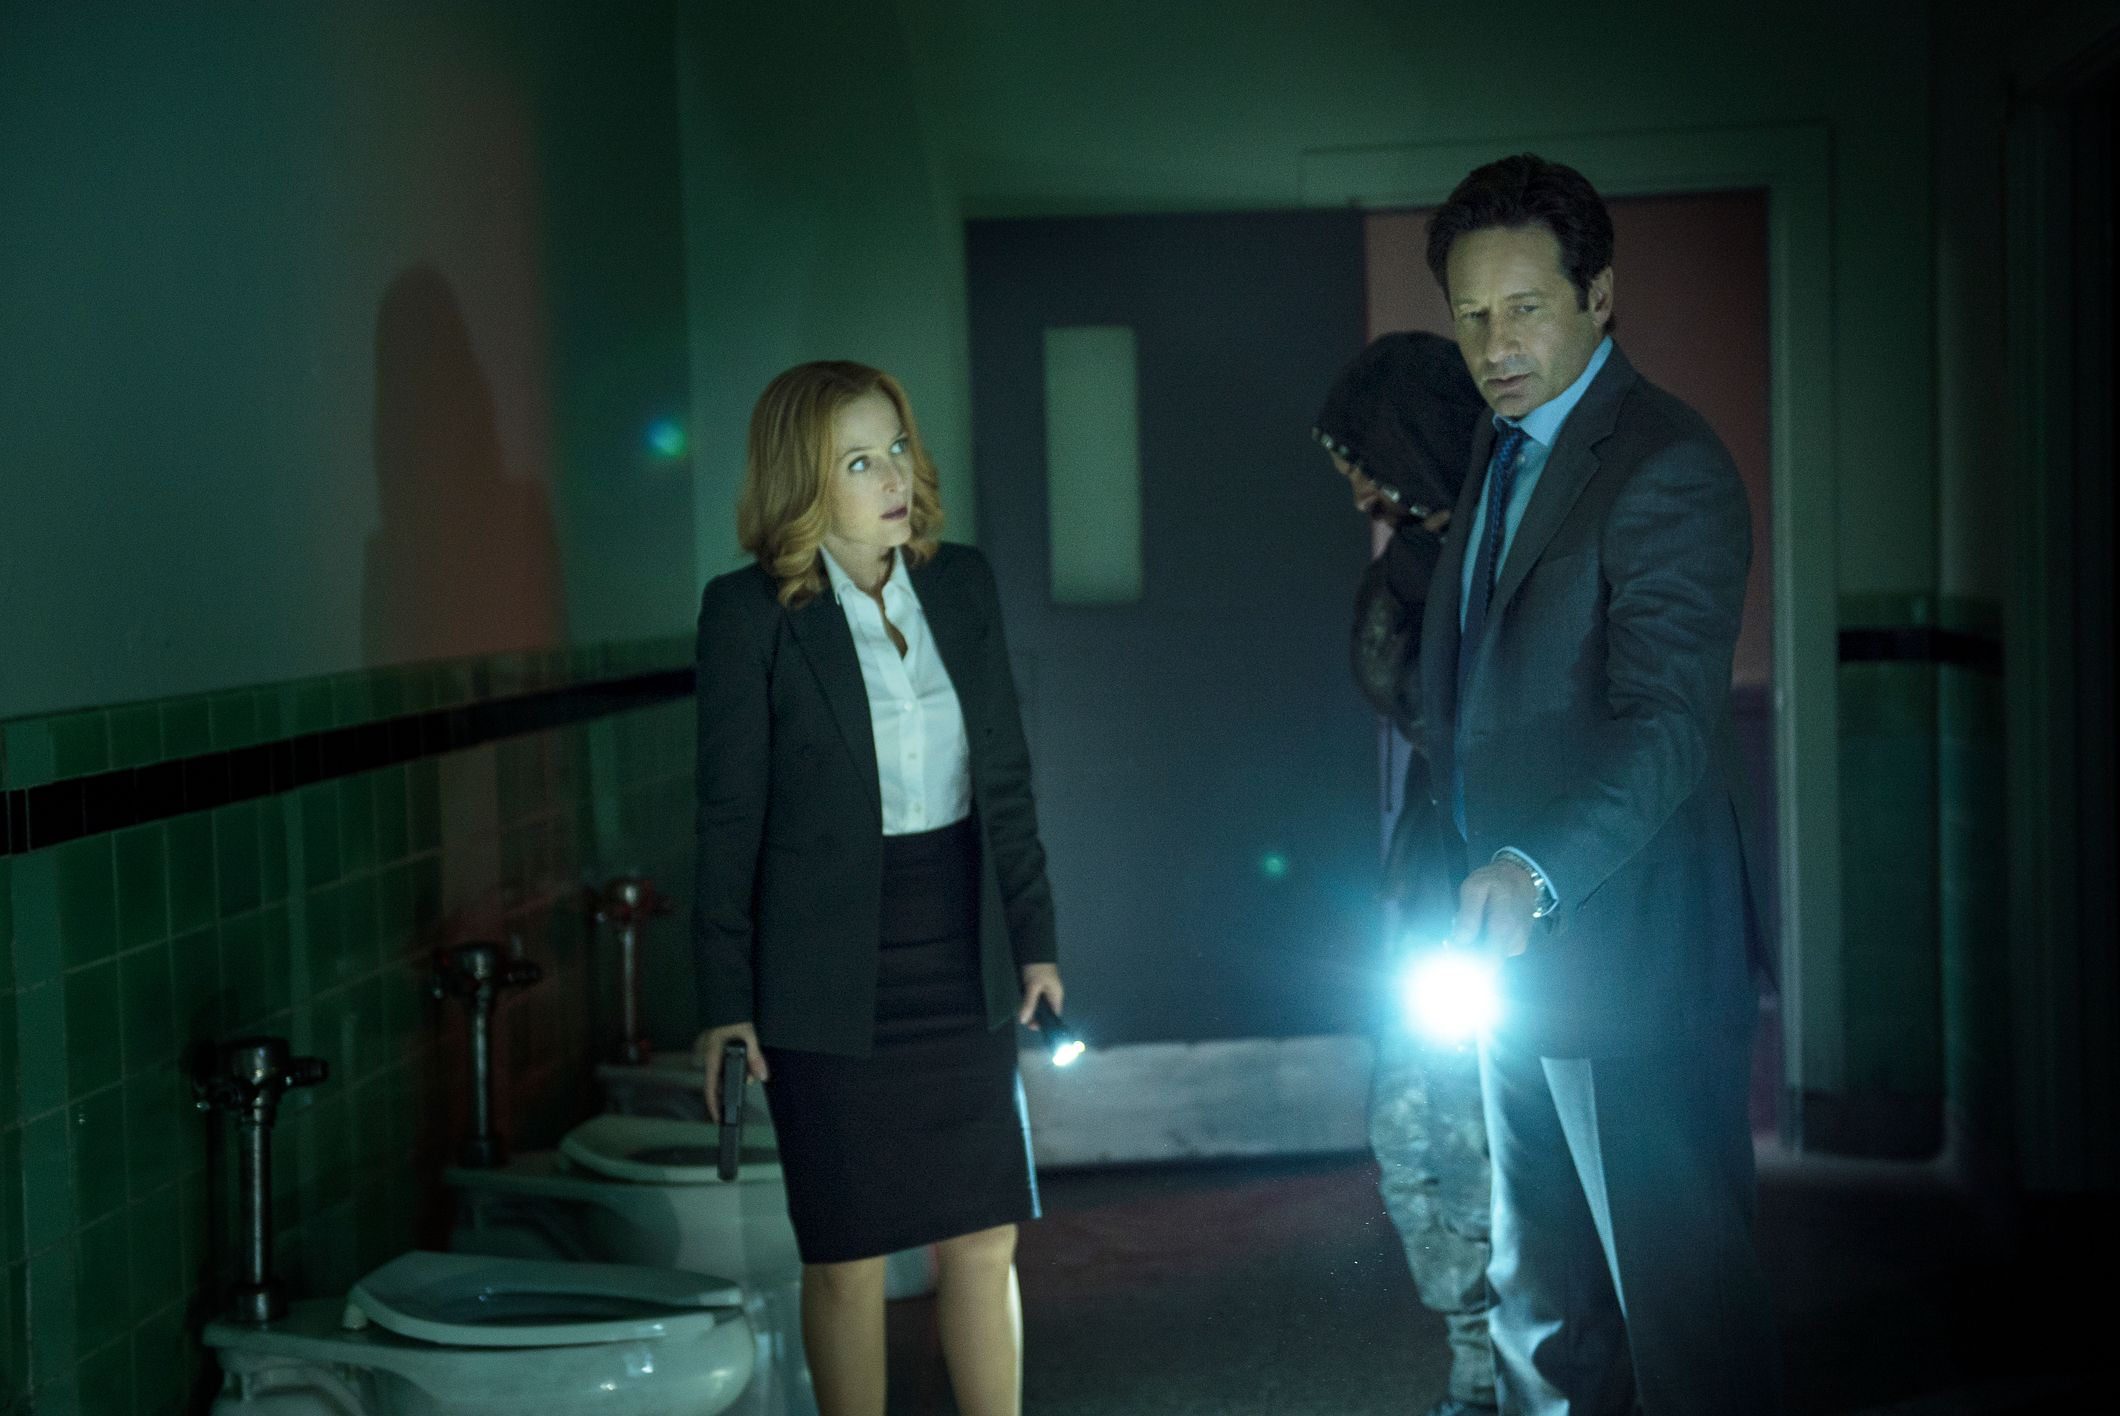 a summary of the television series the x files This essay takes a look back at what we know and what we don't know about the story arc of the x-files tv series, as of the end of the series in 2002, with an eye toward what might happen in the future.